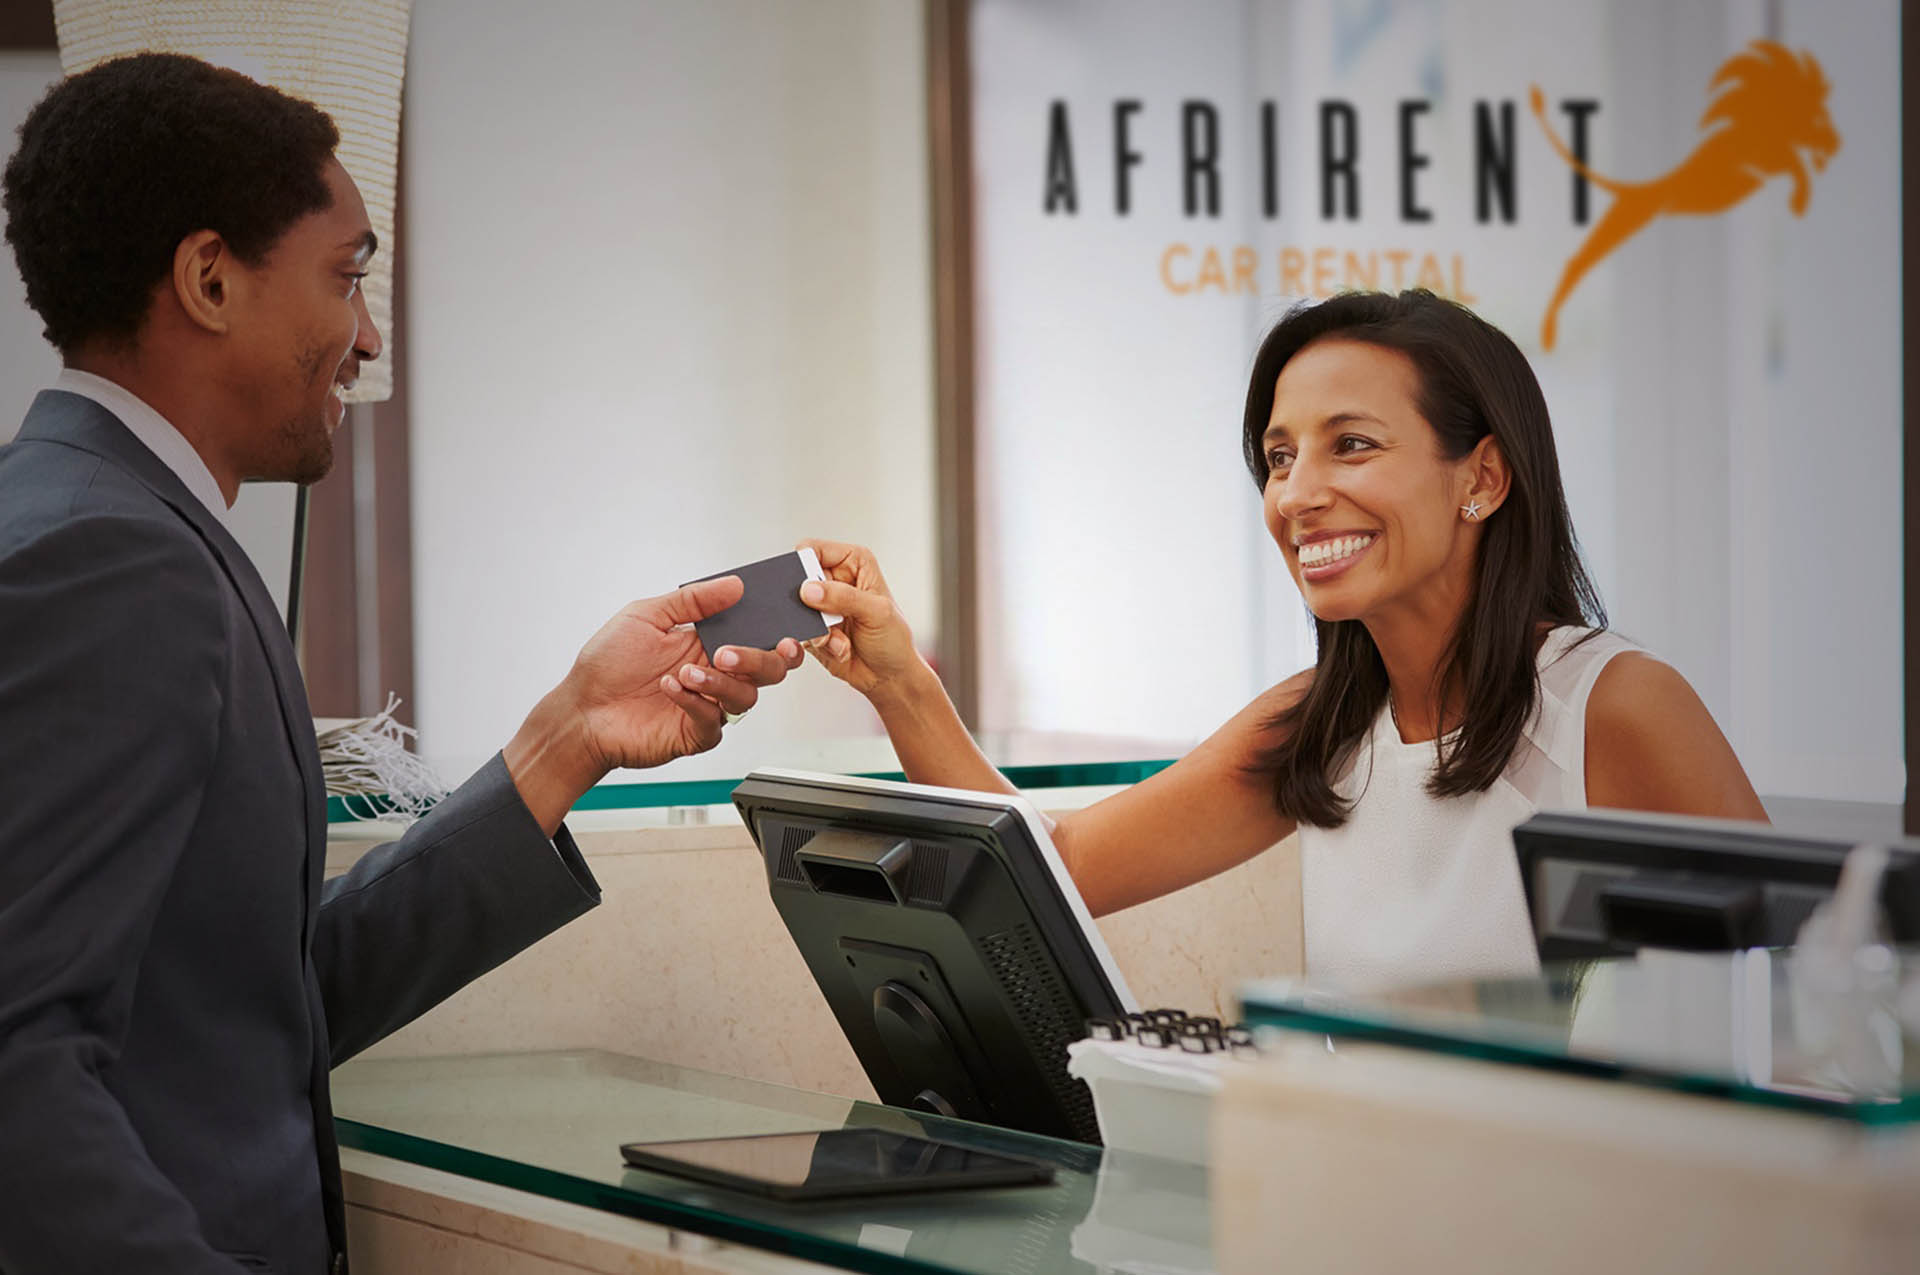 AFRIRENT CAR RENTAL: HOME-GROWN